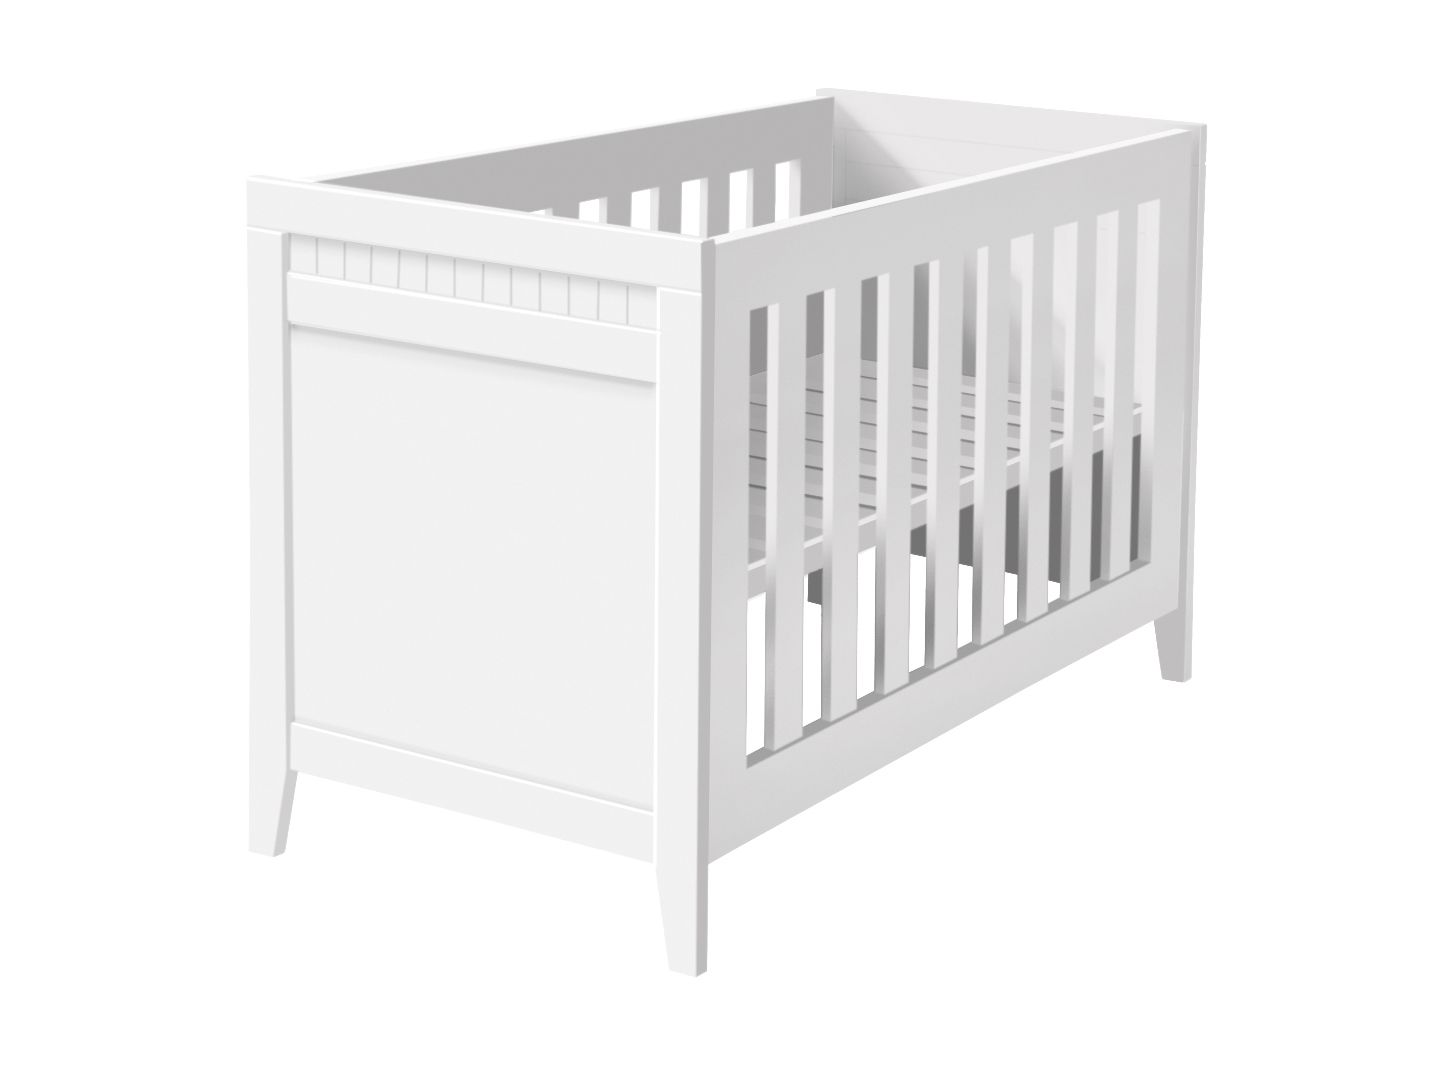 Babystyle chateaux white nursery furniture setBaby Nursery Furniture Sets Clearance Australia  Crib Babies R Us  . Nursery Furniture Sets Clearance Uk. Home Design Ideas